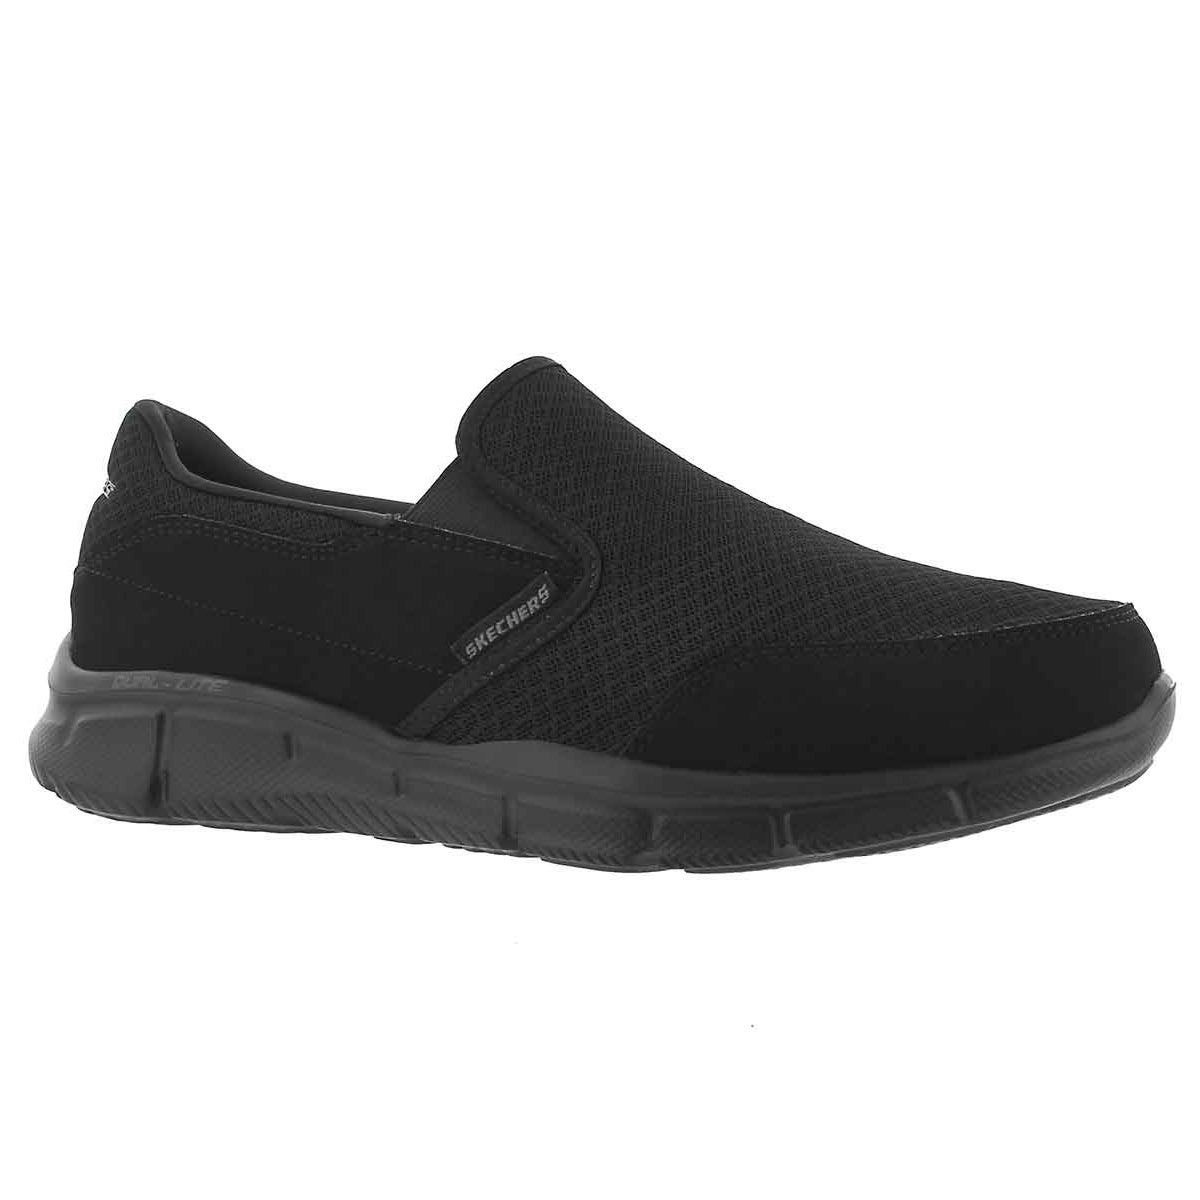 Men's PERSISTANT black slip on sneakers